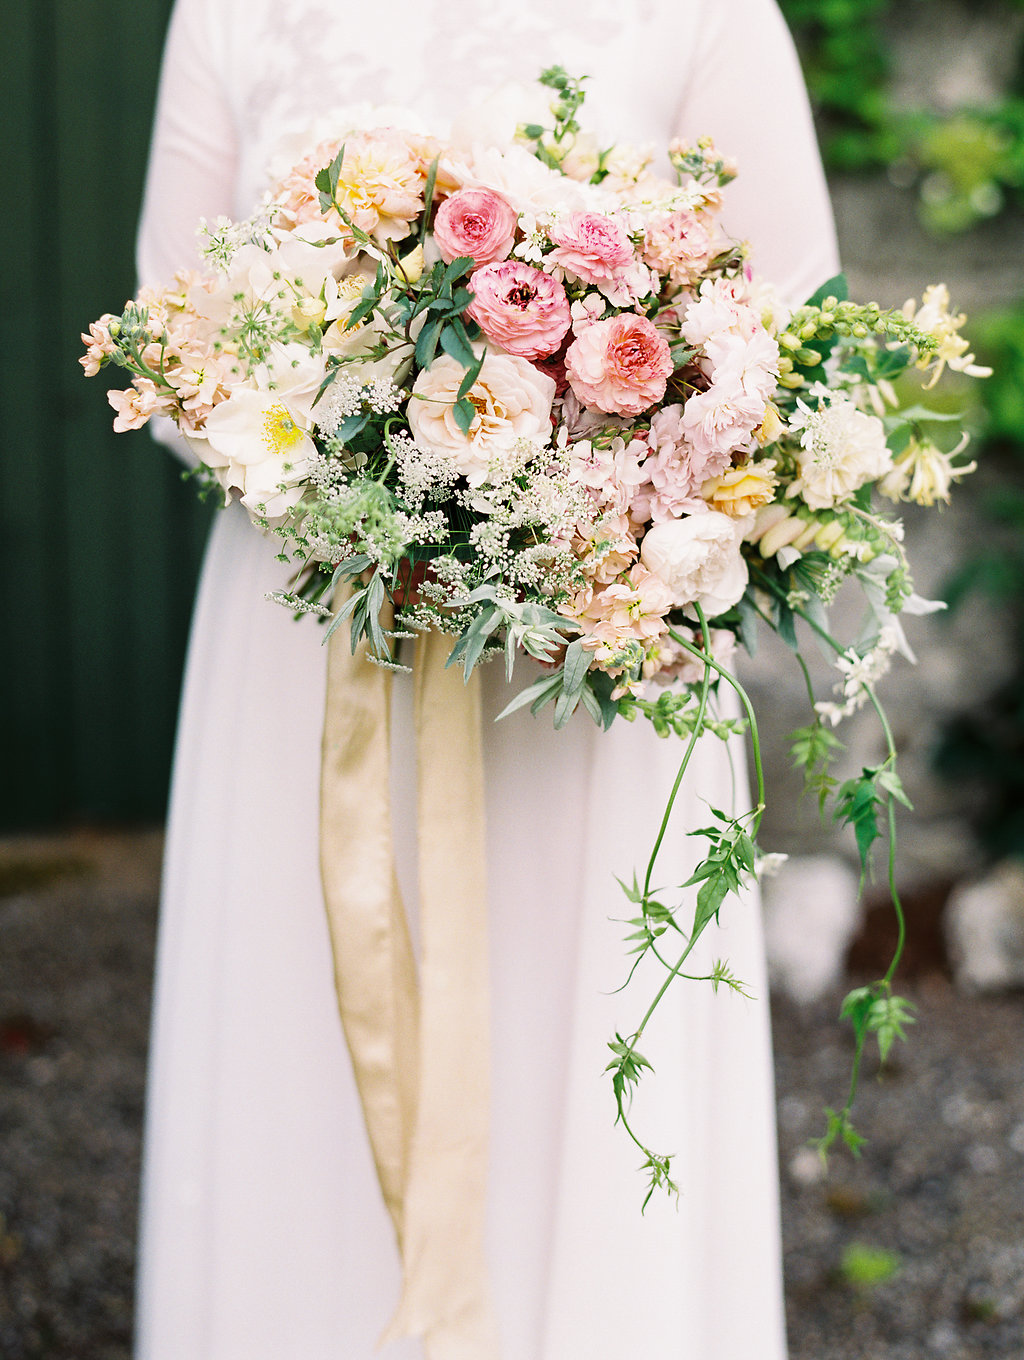 romantic pink and yellow bouquets - photo by As Ever Photography http://ruffledblog.com/the-secret-garden-inspired-wedding-in-ireland